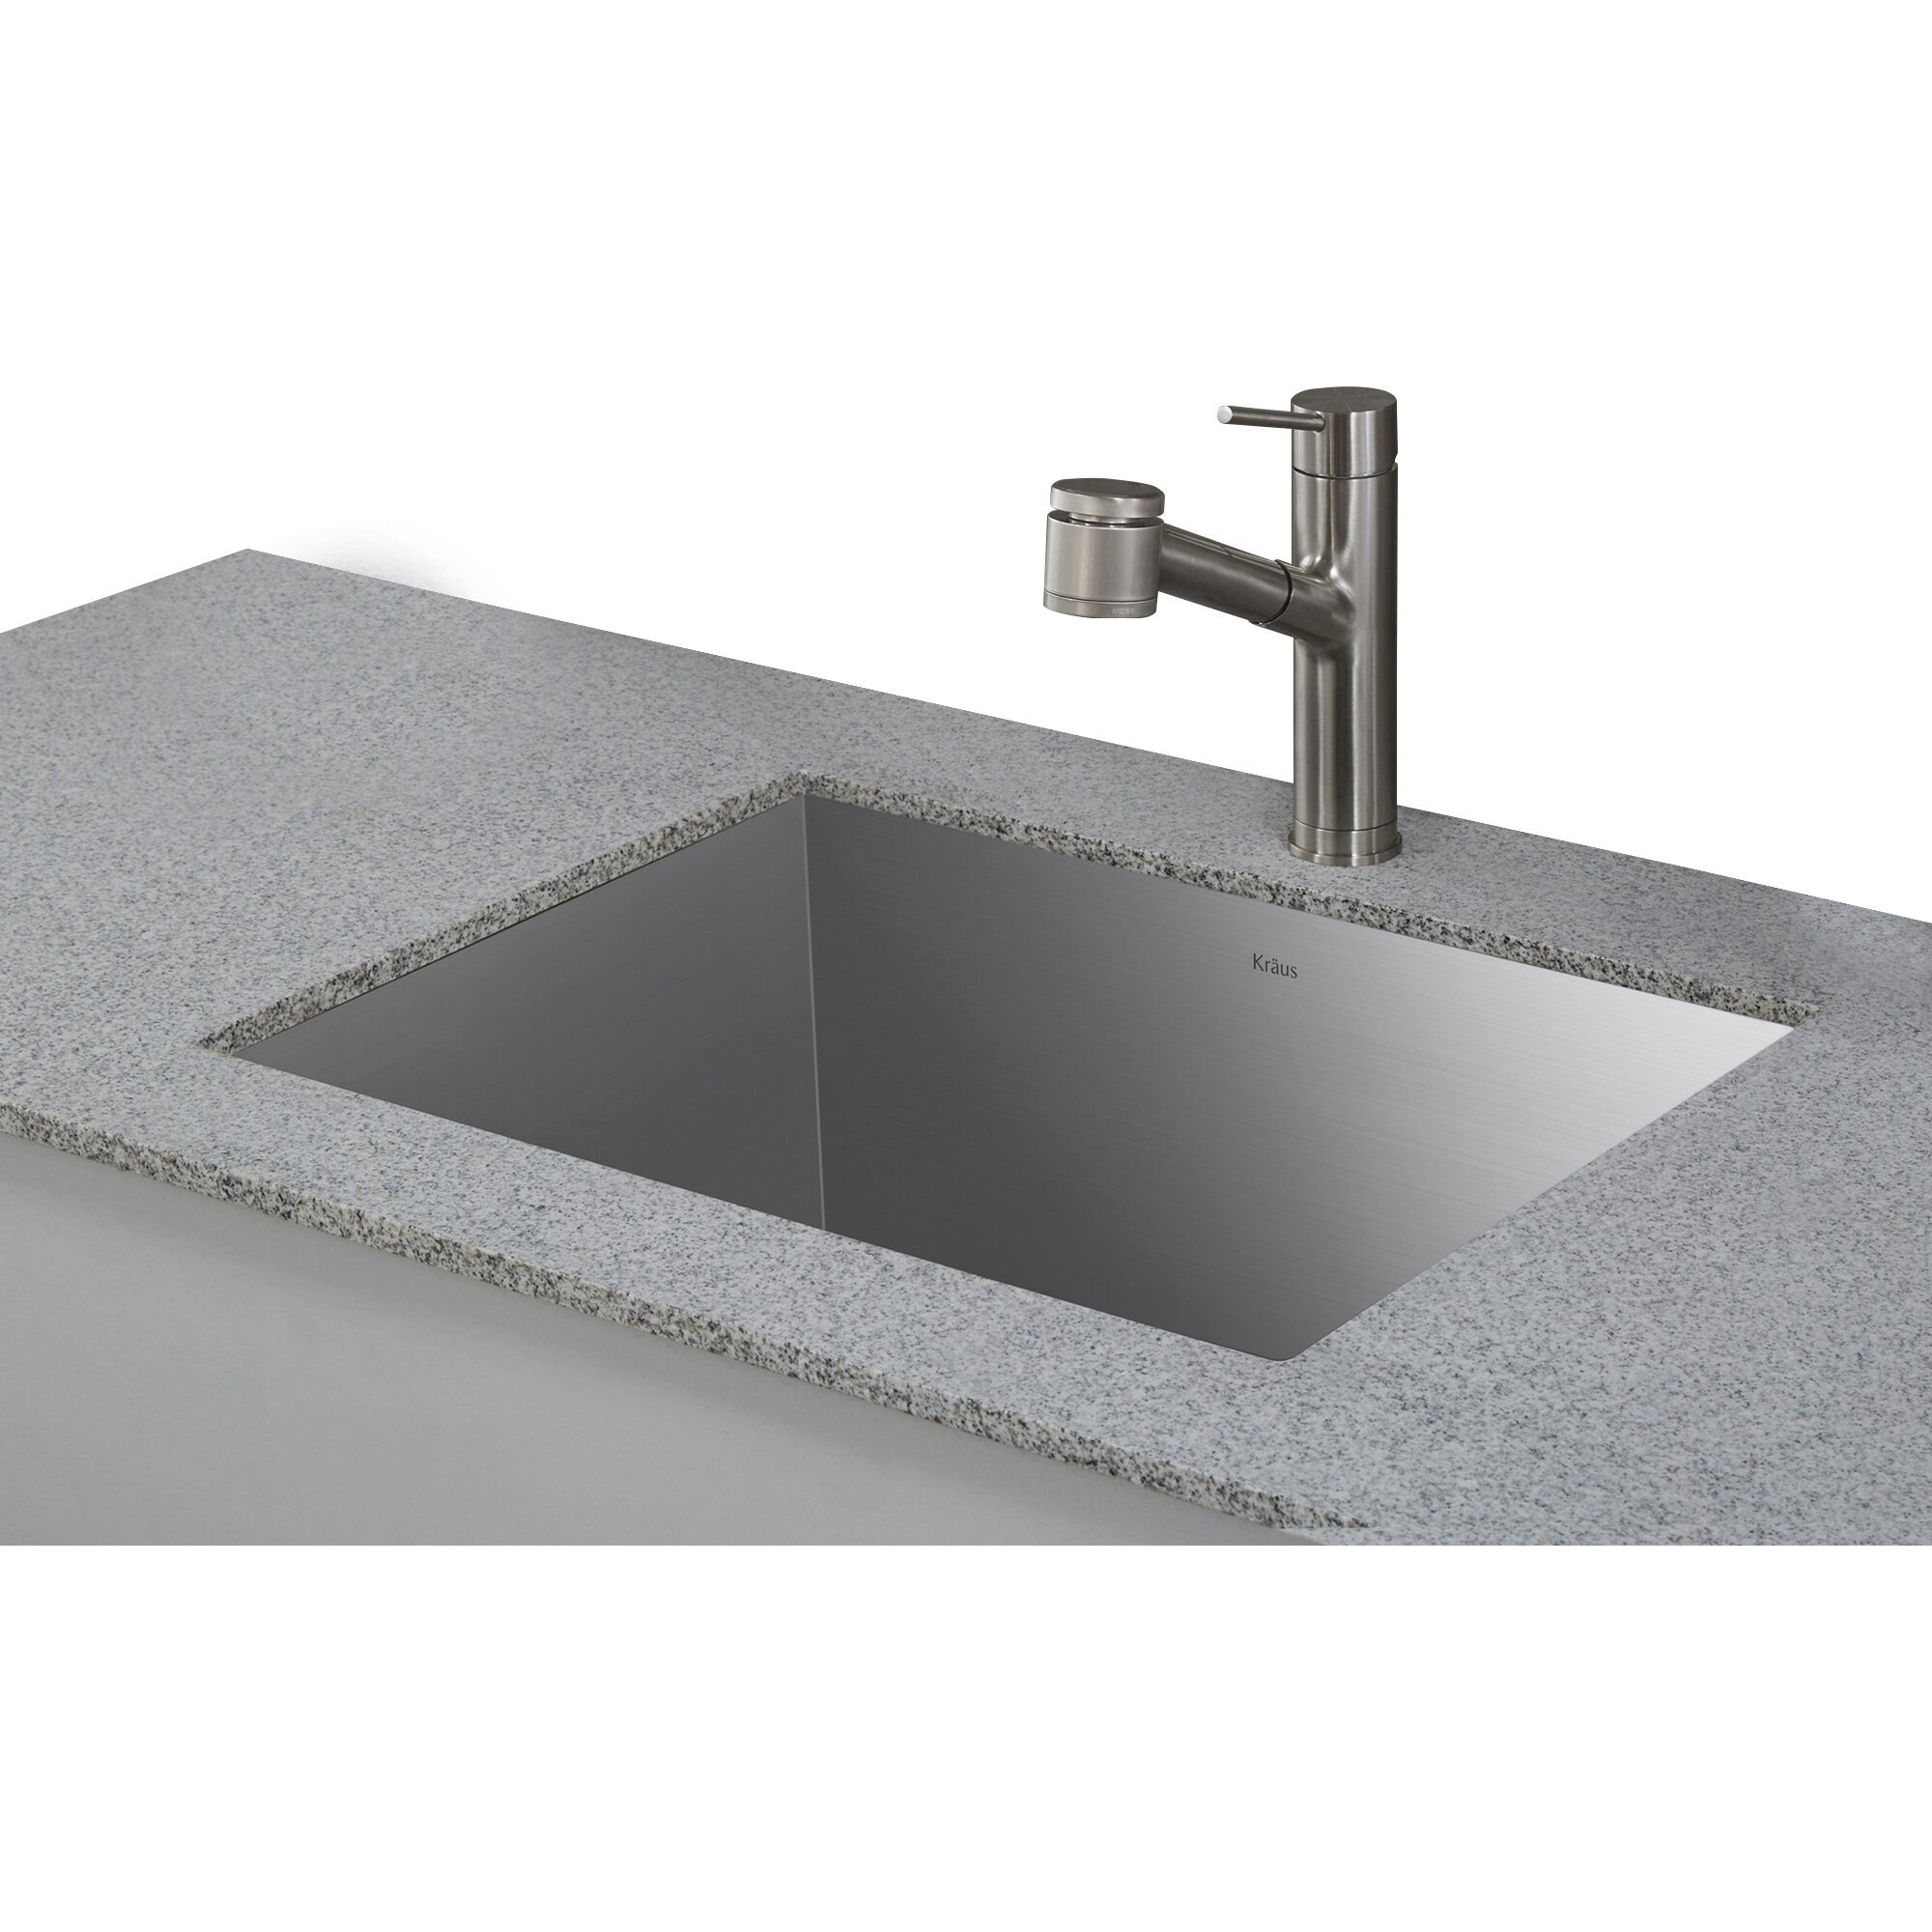 ... Undermount Single Bowl Stainless Steel Laundry and Utility Sink by